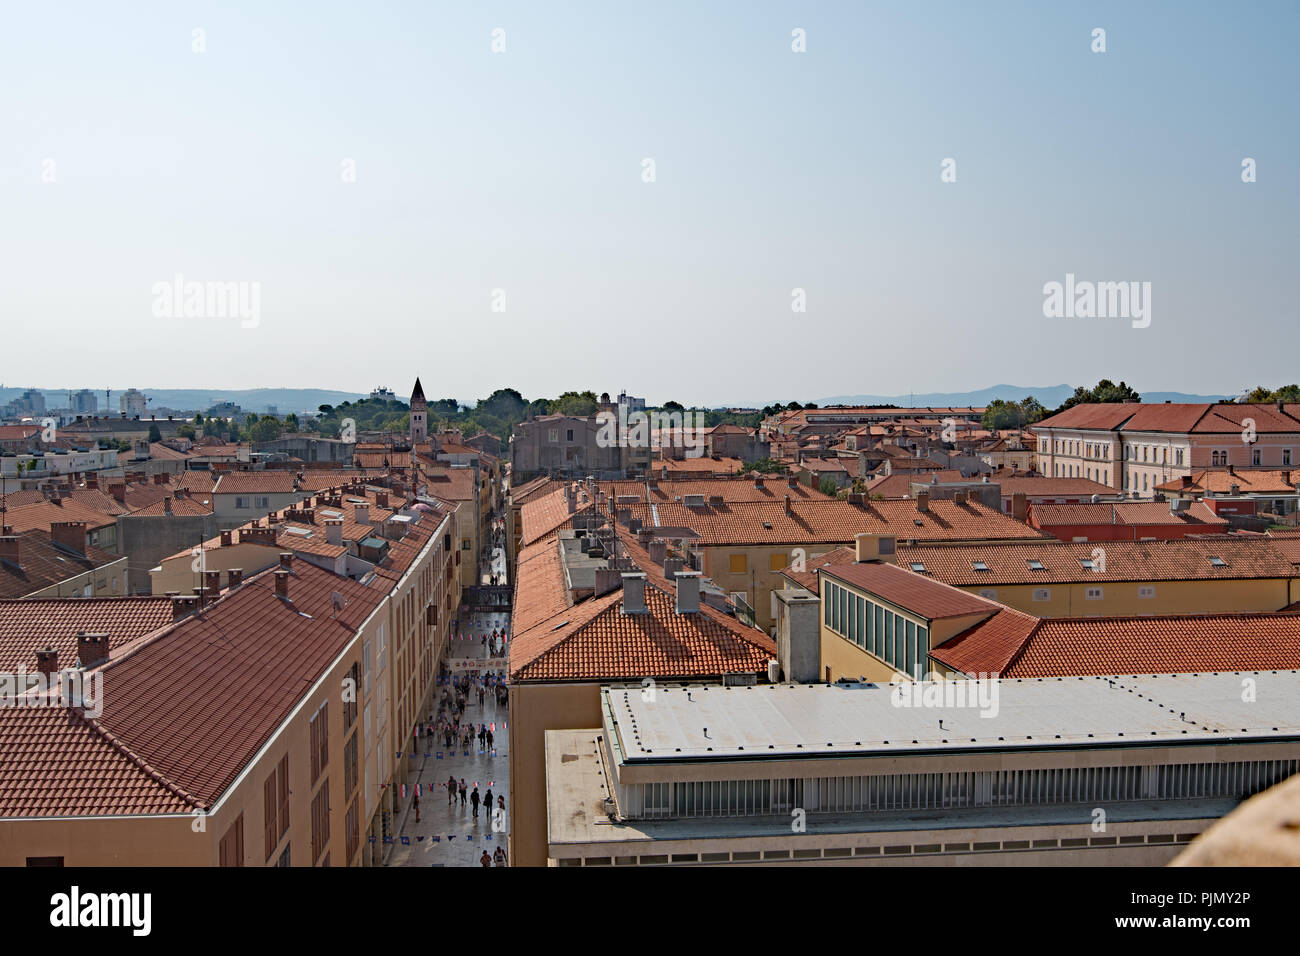 View of Zadar Old Town rooftops from the Cathedral Bell Tower, Zadar, Croatia - Stock Image